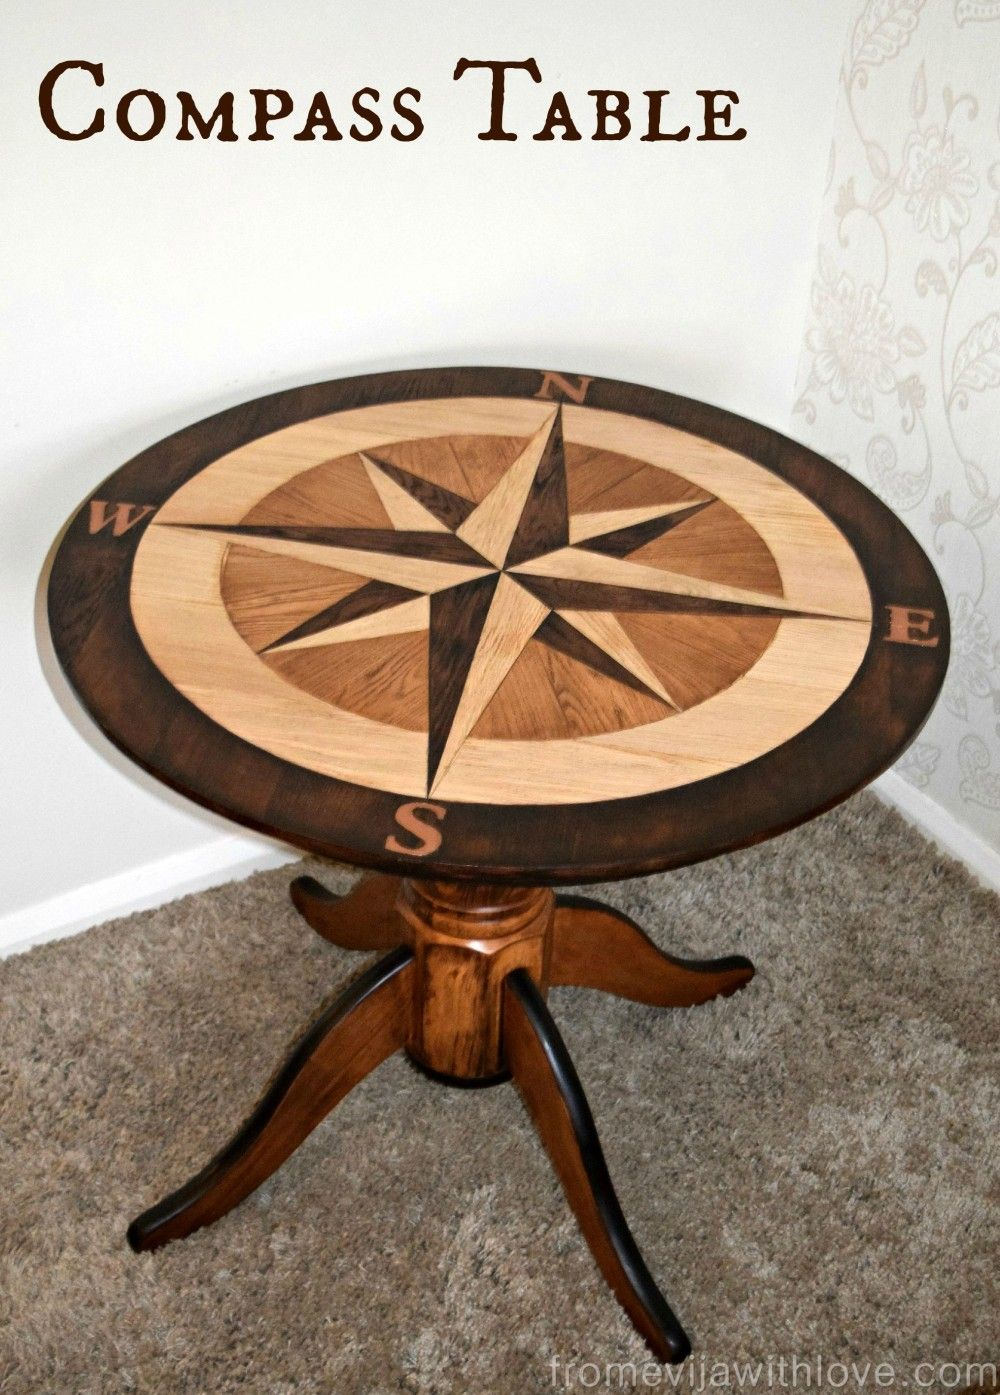 Charmant DIY Wood And Stain Compass Rose Table Using Floor Planks Cut Out Like A  Puzzle. Fabulous!